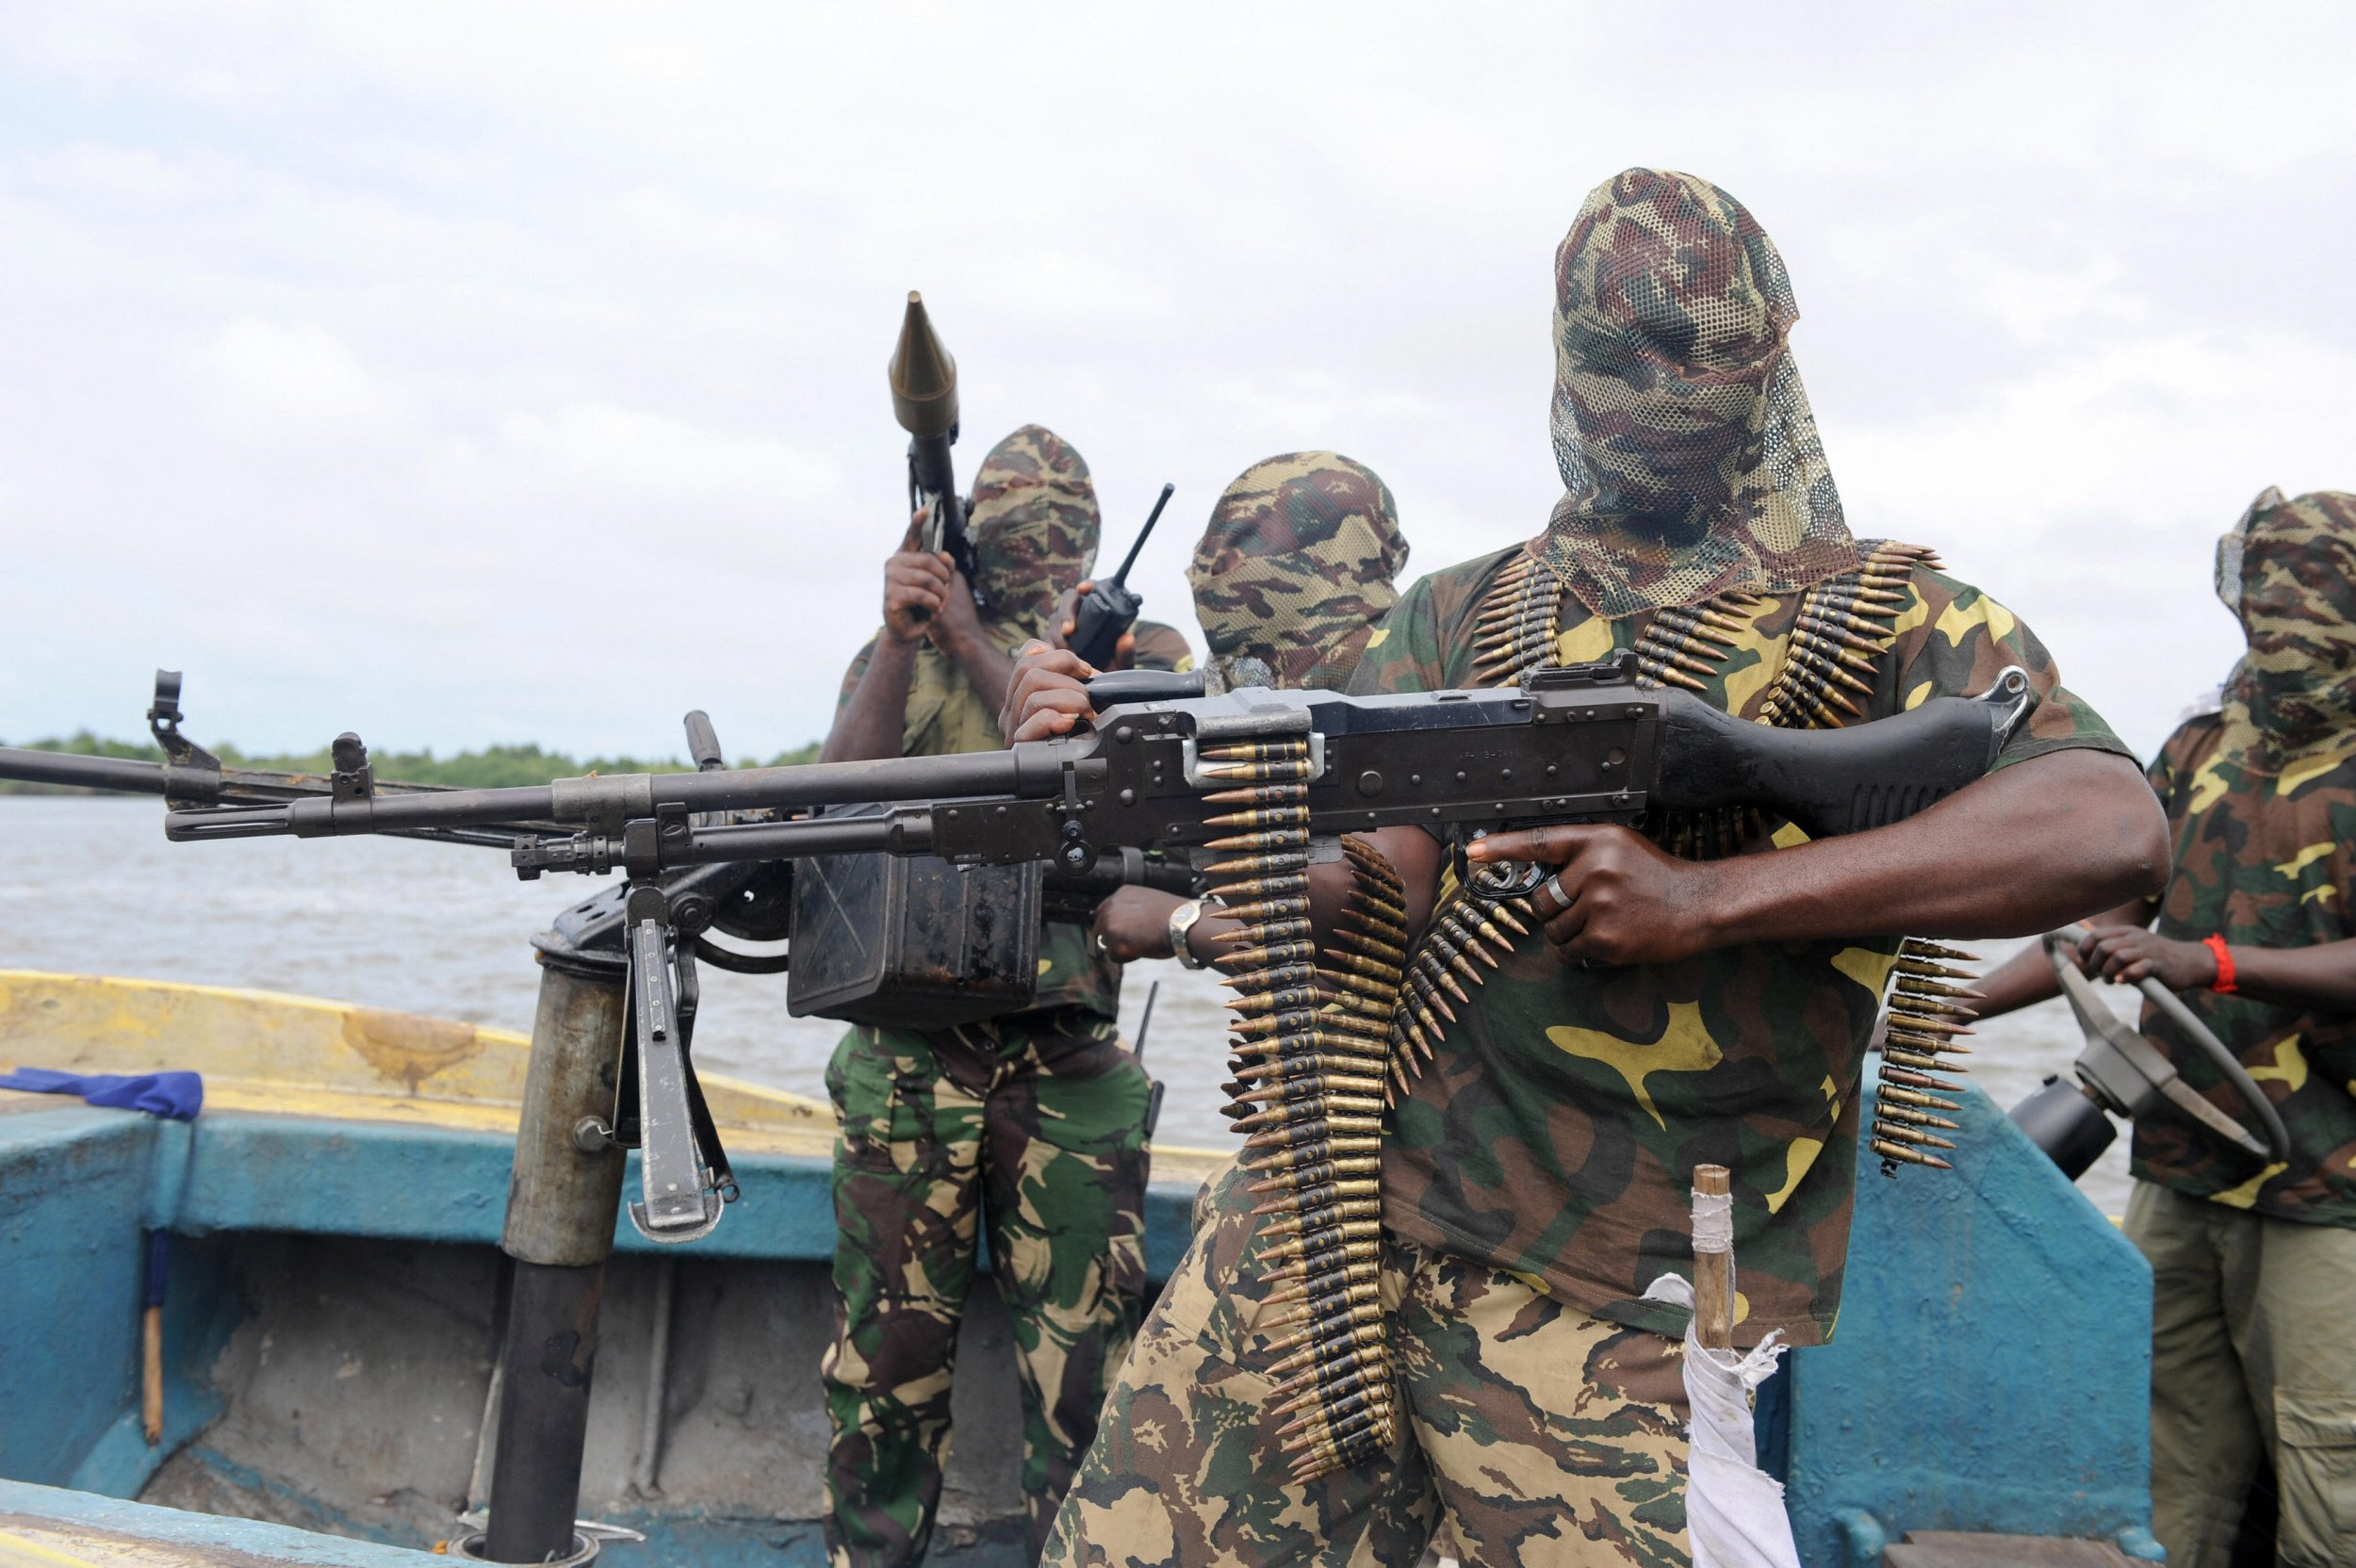 Niger Delta fighters prepare for an operation in Nigeria.